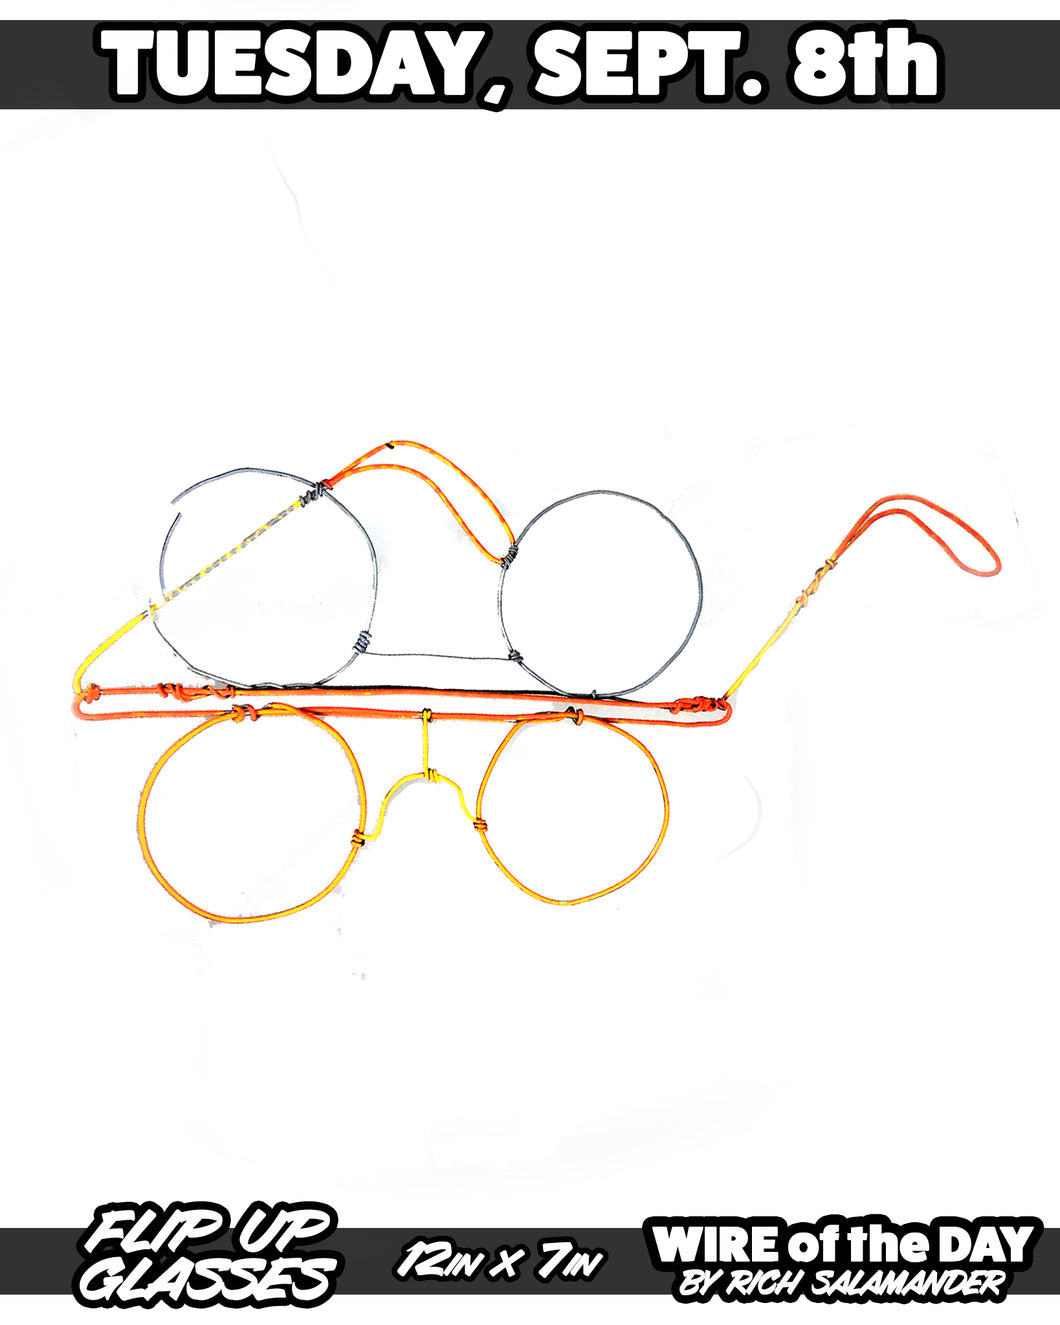 WIRE of the DAY FLIP UP GLASSES